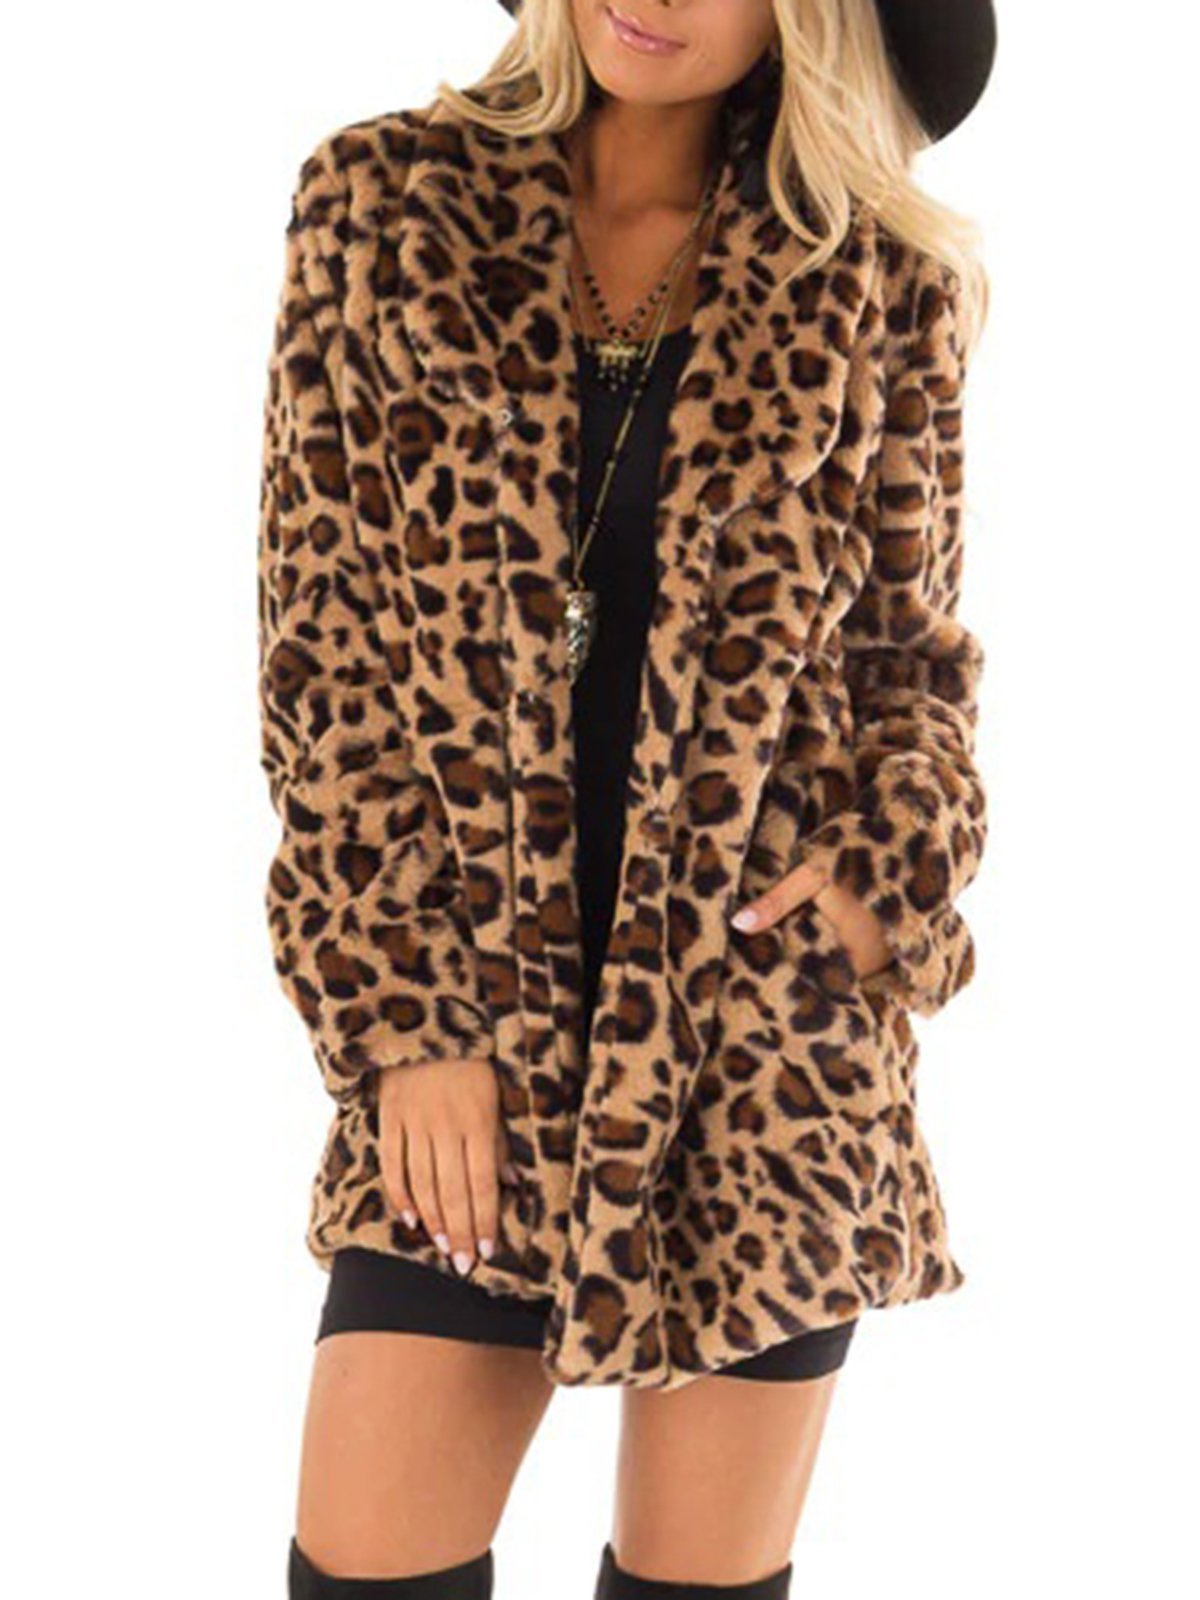 Leopard Print Teddy Bear Coats